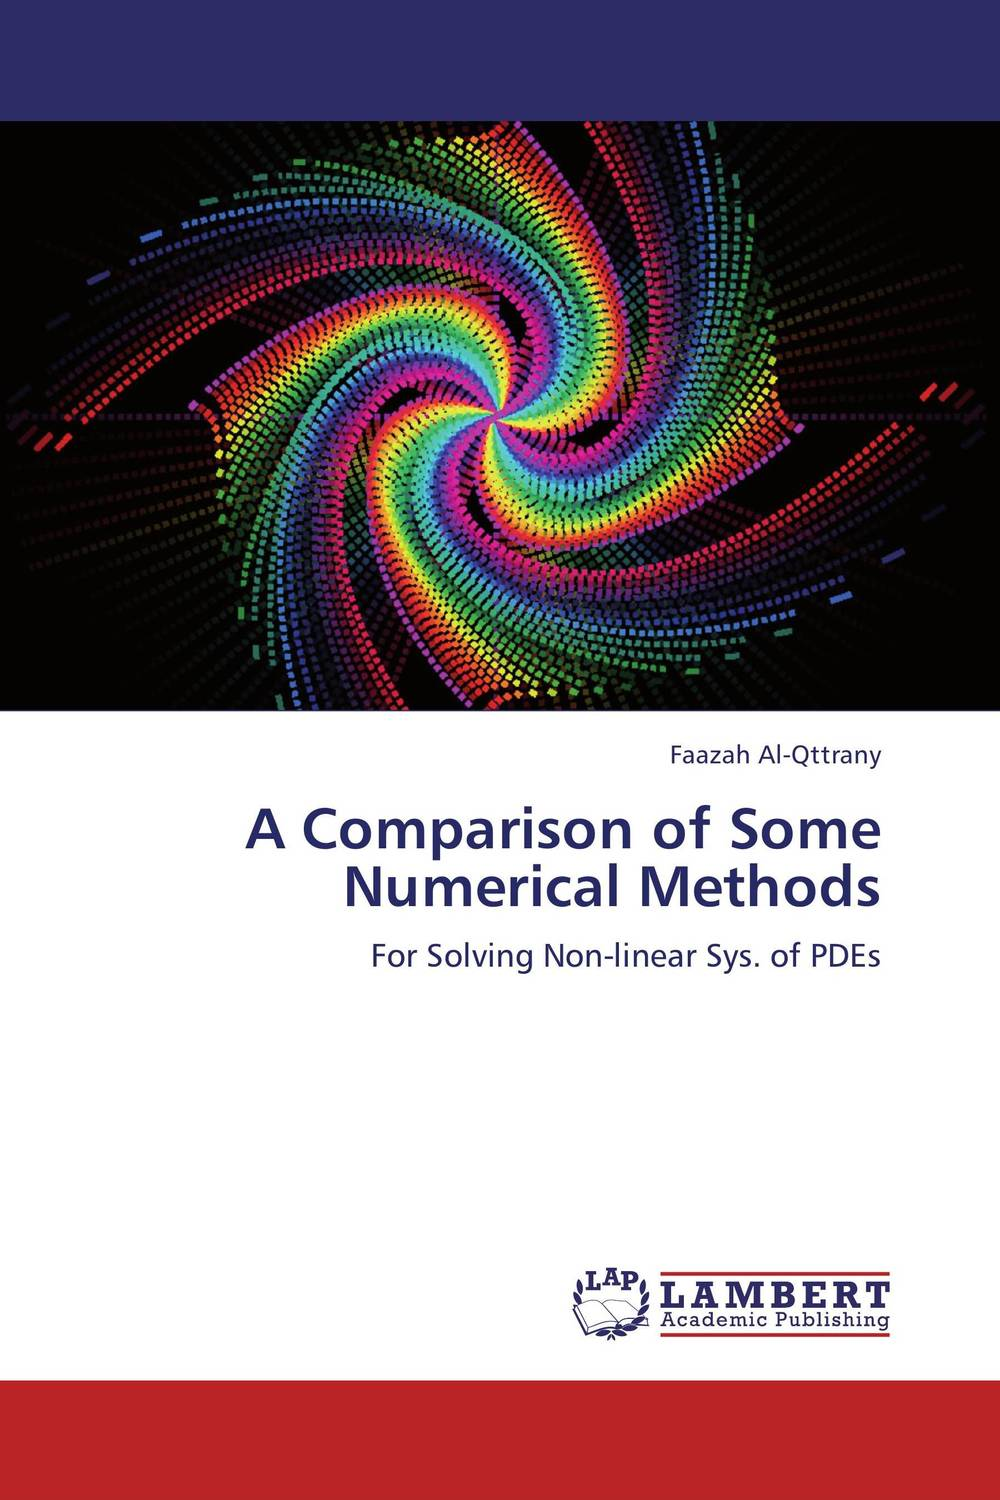 A Comparison of Some Numerical Methods belousov a security features of banknotes and other documents methods of authentication manual денежные билеты бланки ценных бумаг и документов